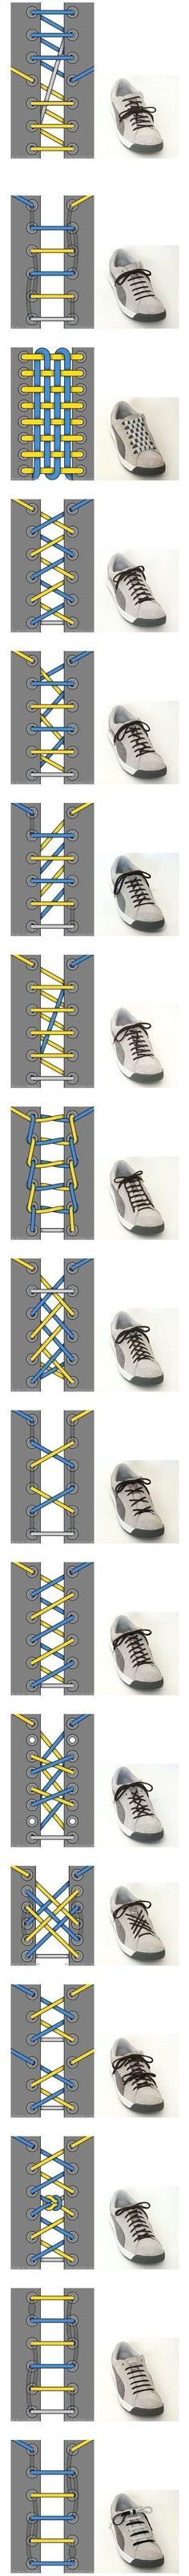 17 Ways To Tie Your Shoelaces.